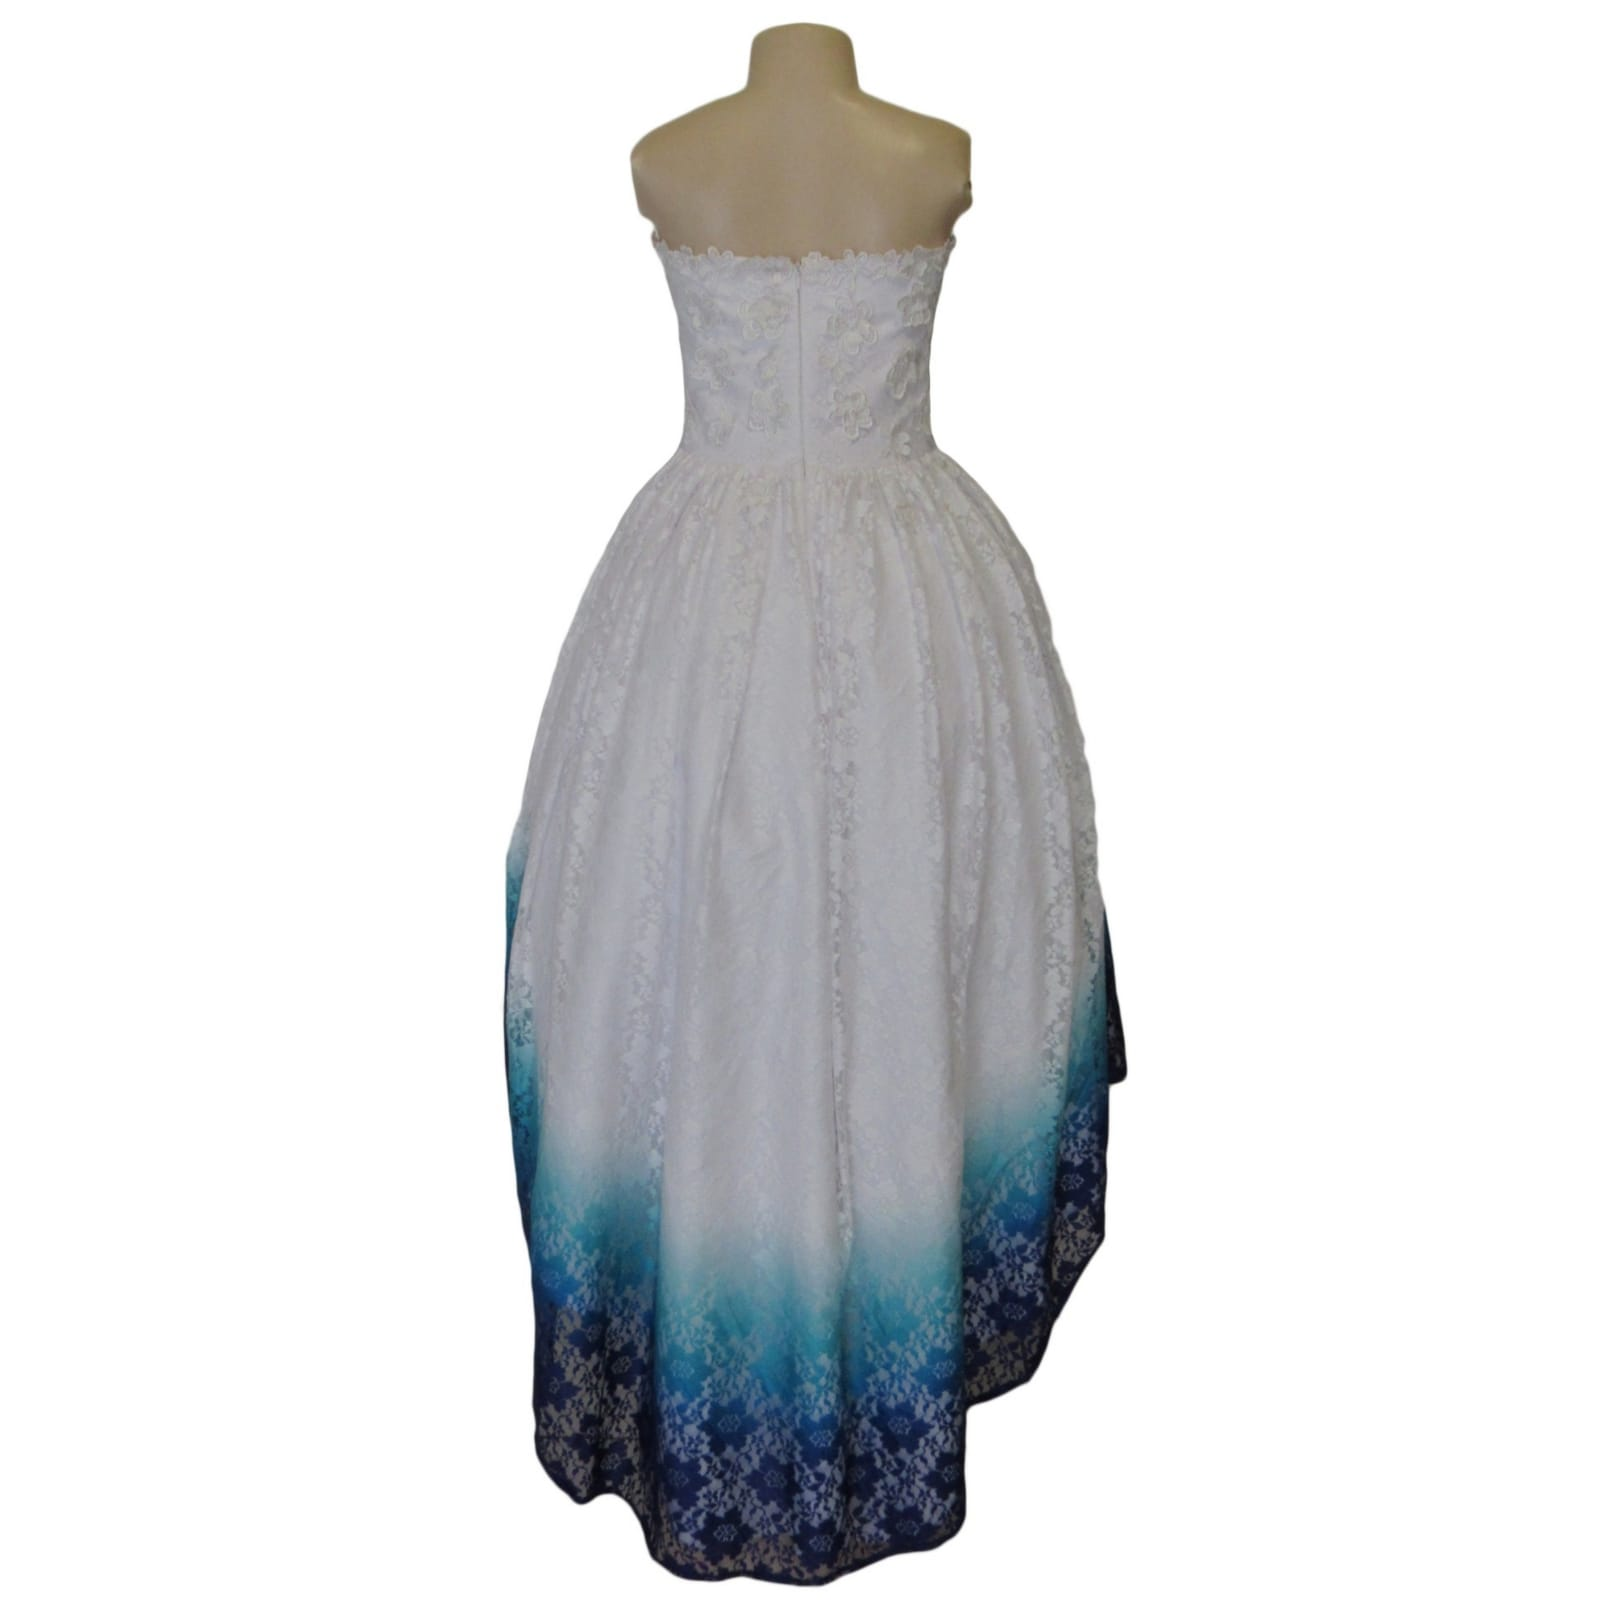 White ombre high low boob tube lace prom dress 7 white ombre high low boob tube lace dress, in blue, purple and turquoise with 3d lace detail on the bodice. Sweetheart neckline, straight back and a bit of volume.